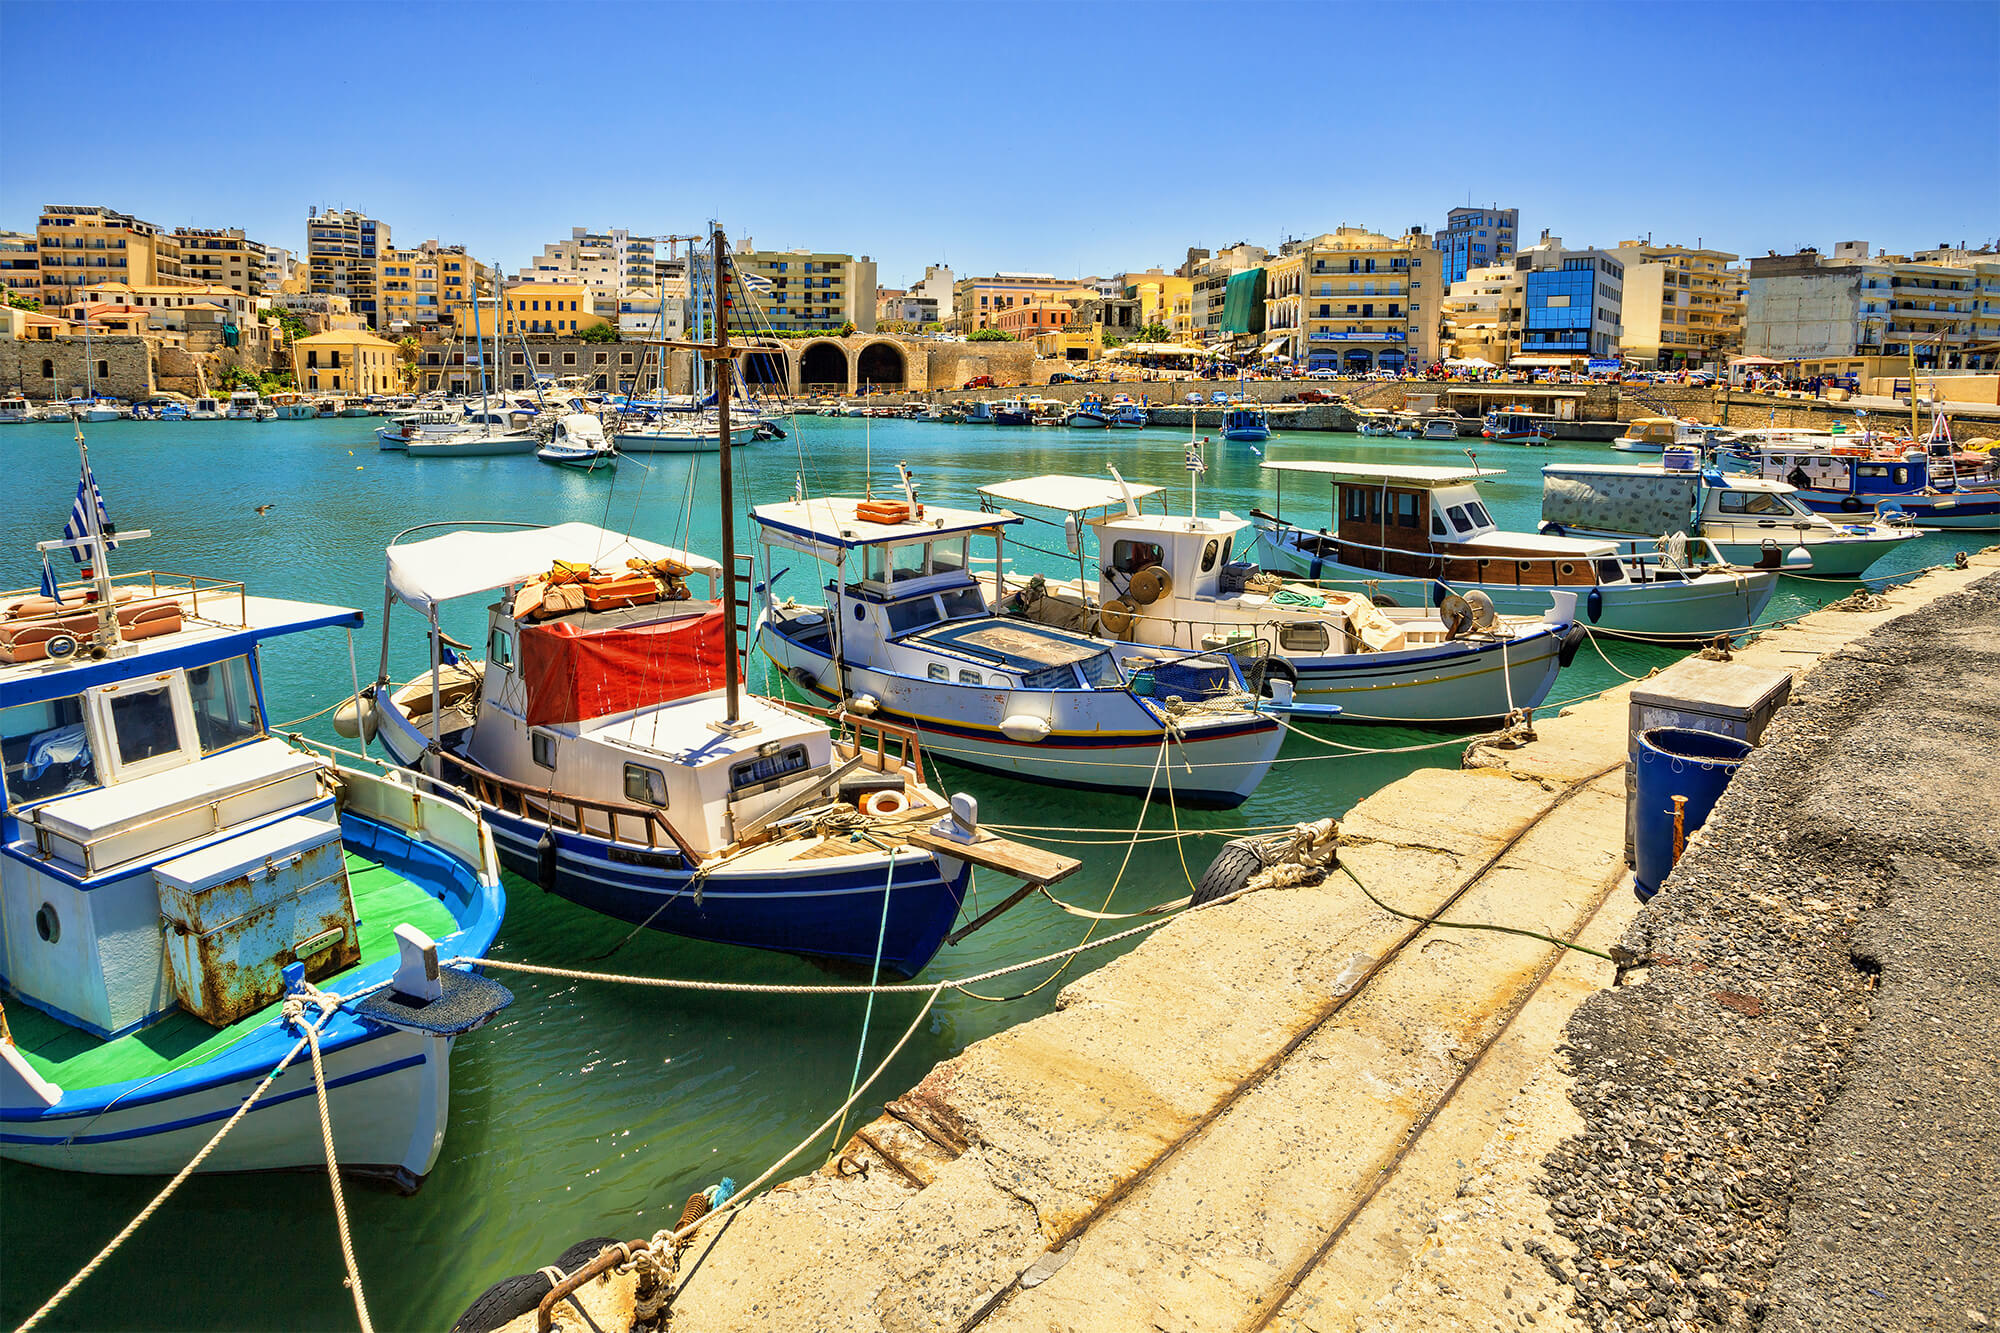 Photo of boats in a dock on the island of Crete.